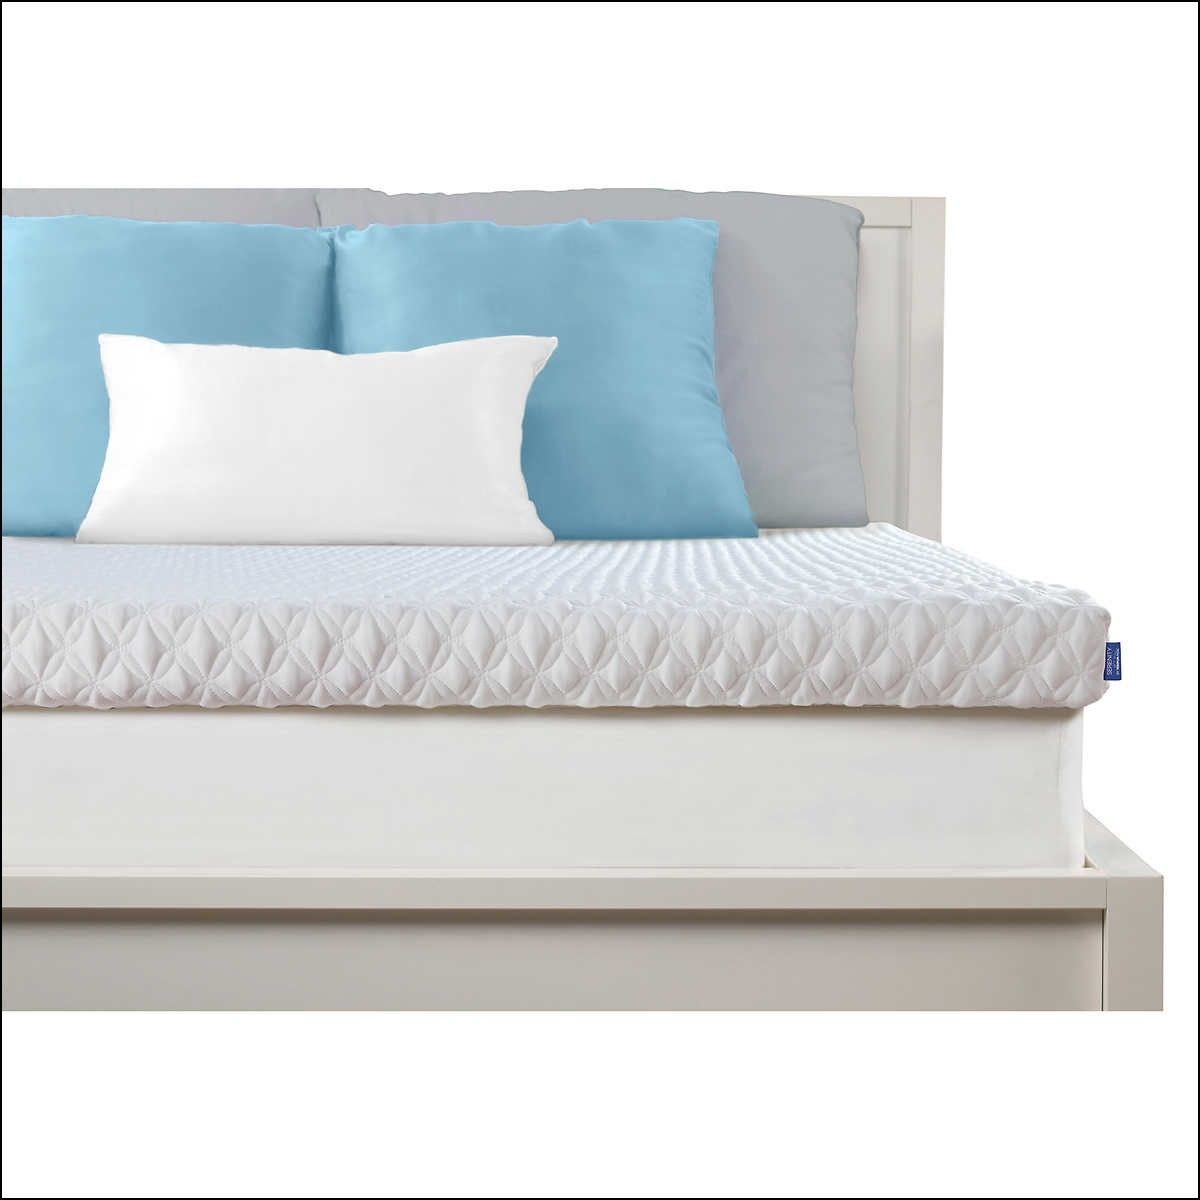 pad mattress product dealsdirect q pillow pt cover resistant com queen protector memory pads topper a au pillowtop top